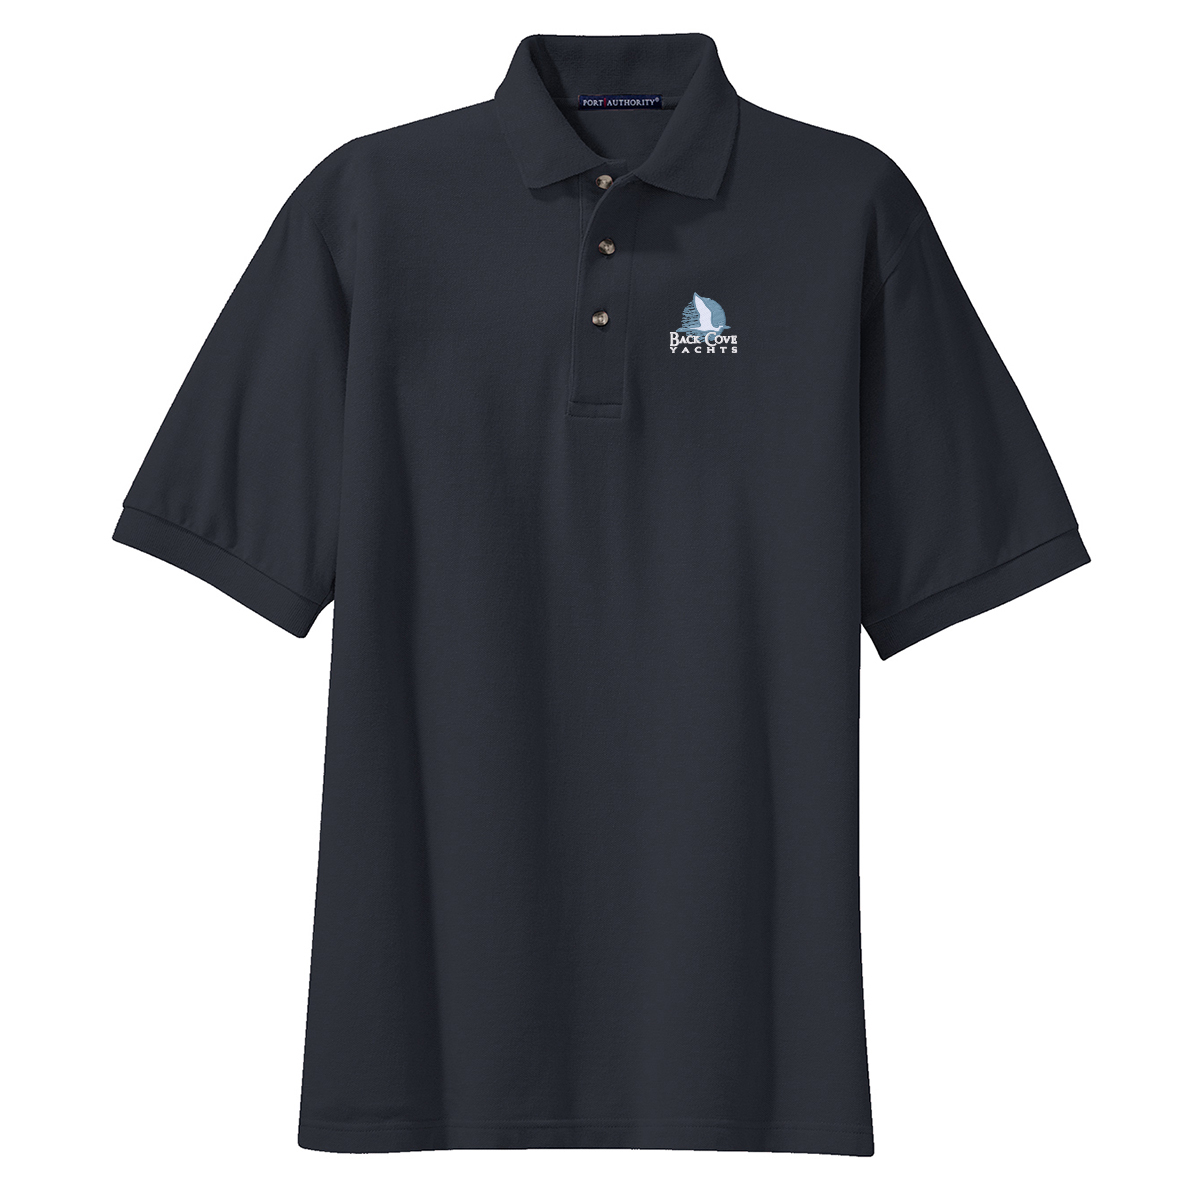 Back Cove Yachts - Men's Cotton Polo